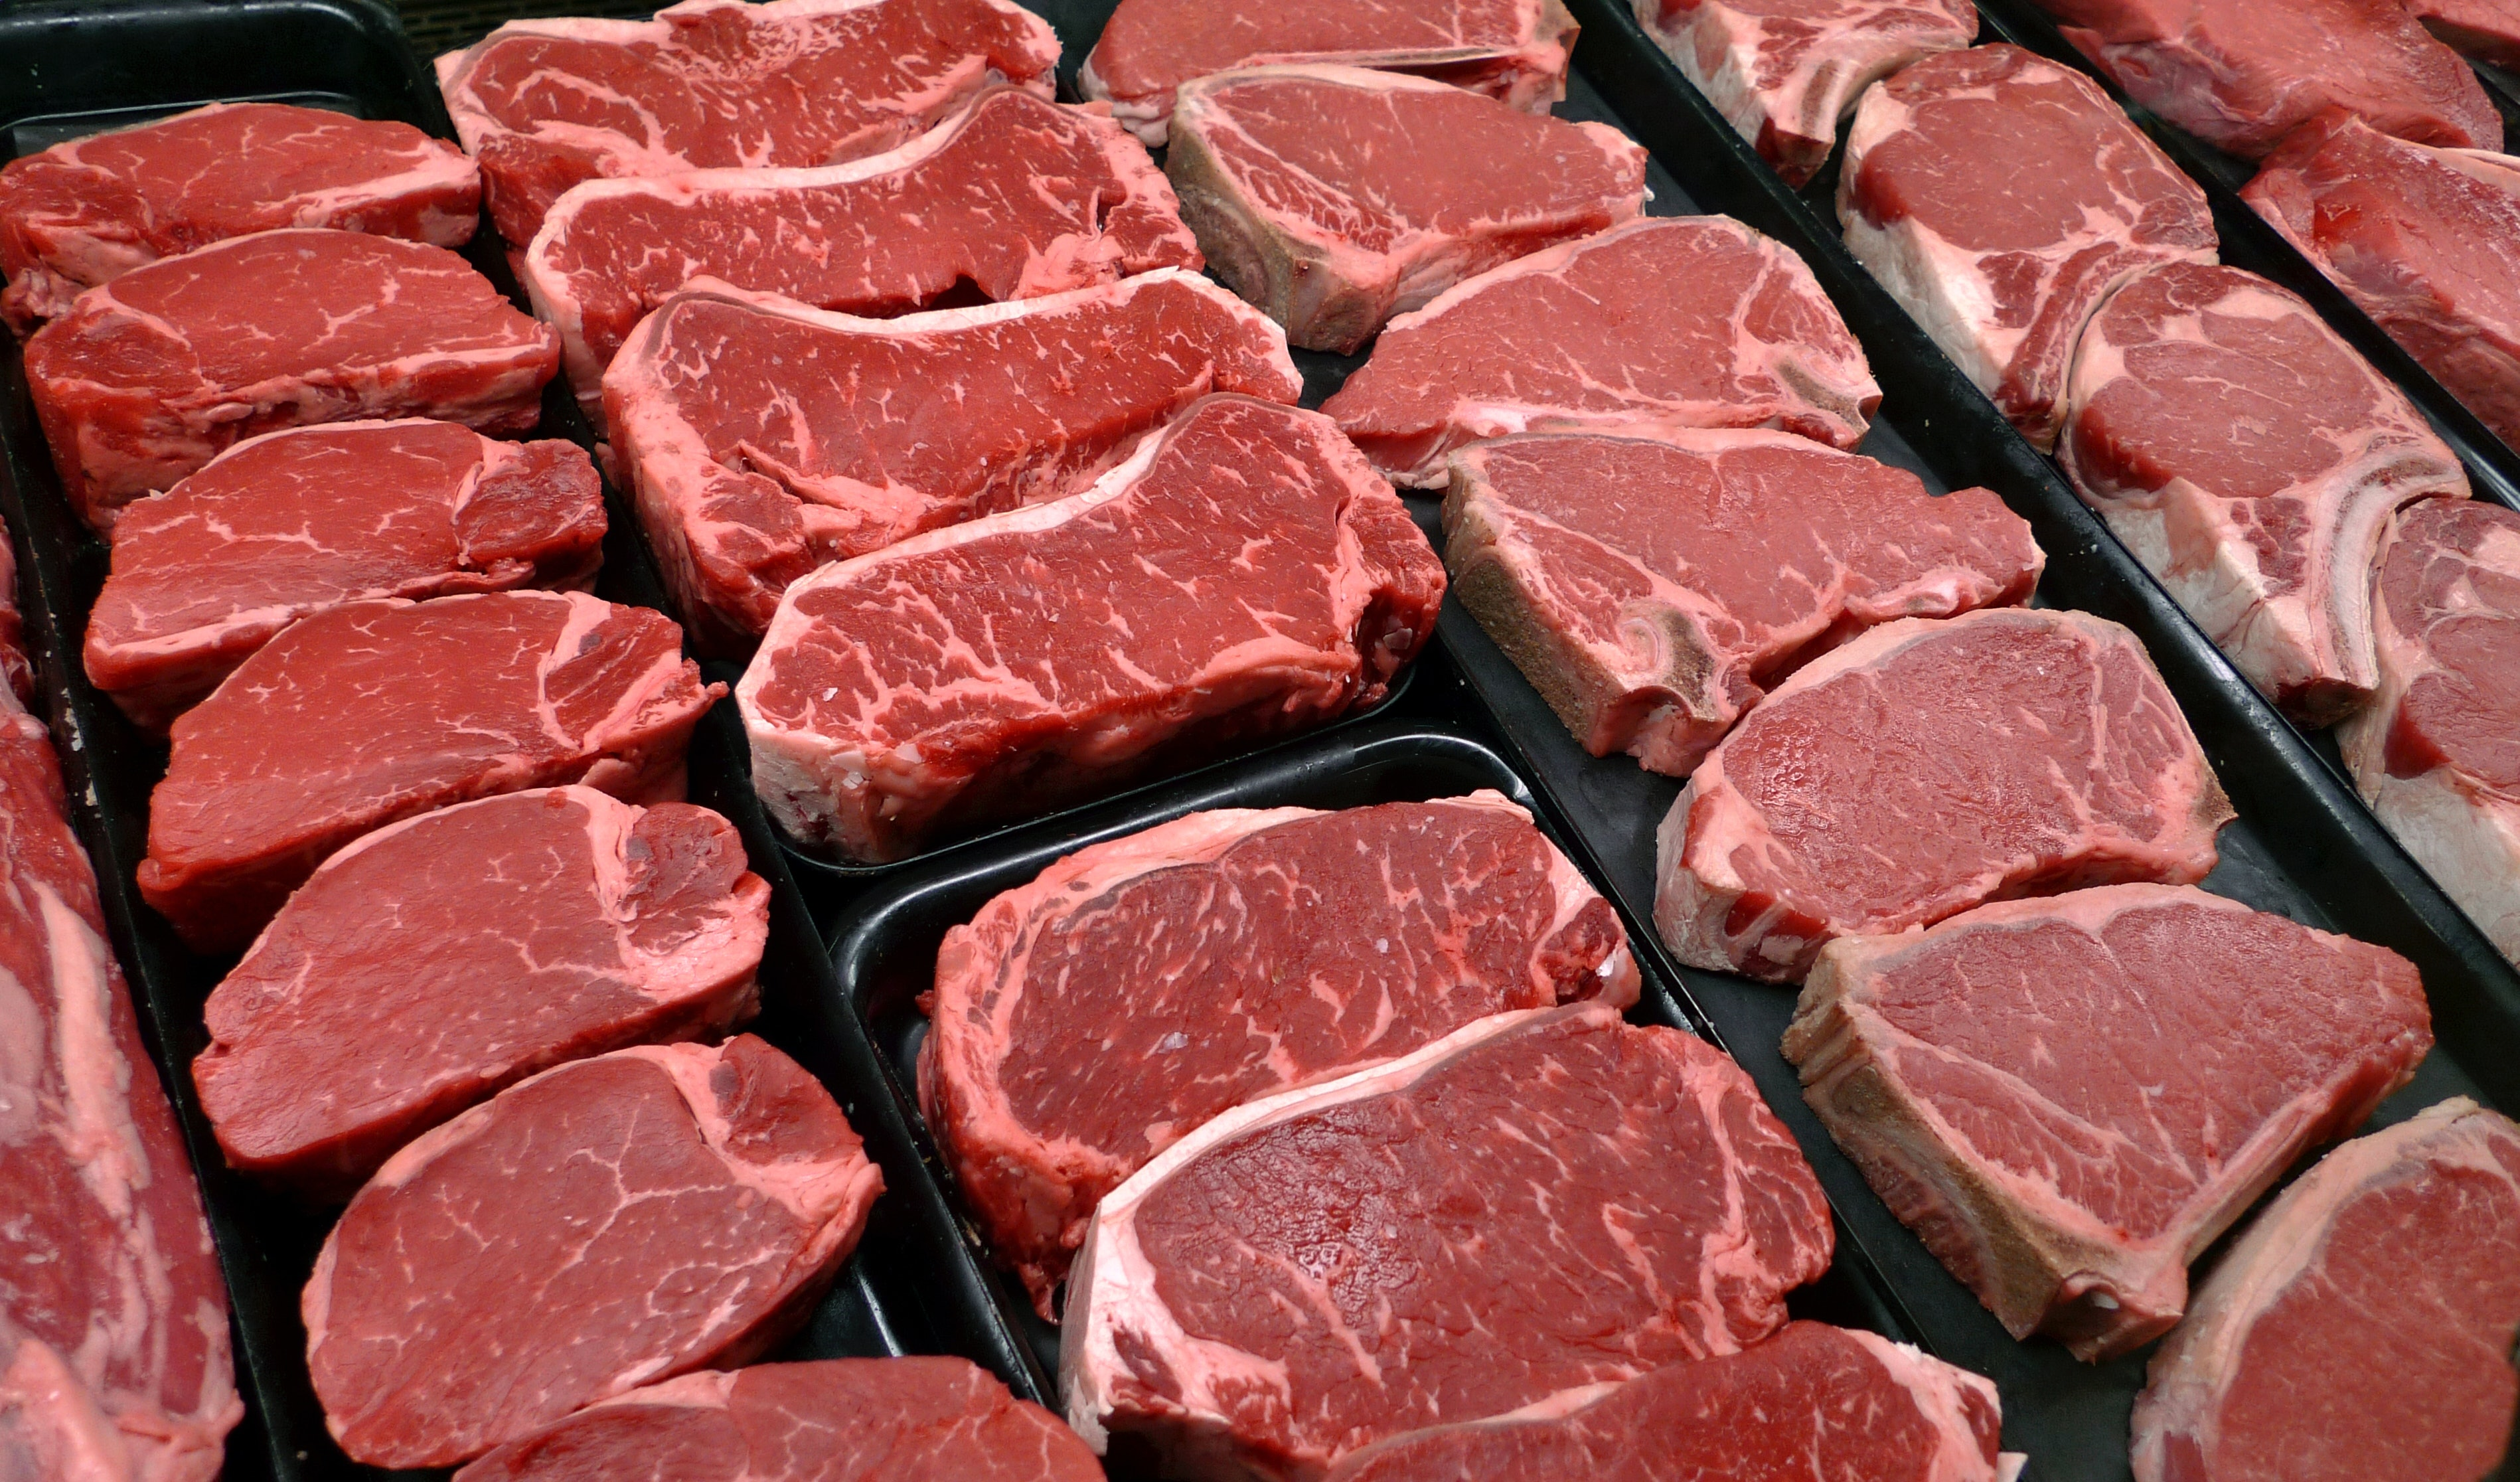 Organic meat vs  non-organic meat: What does paying more